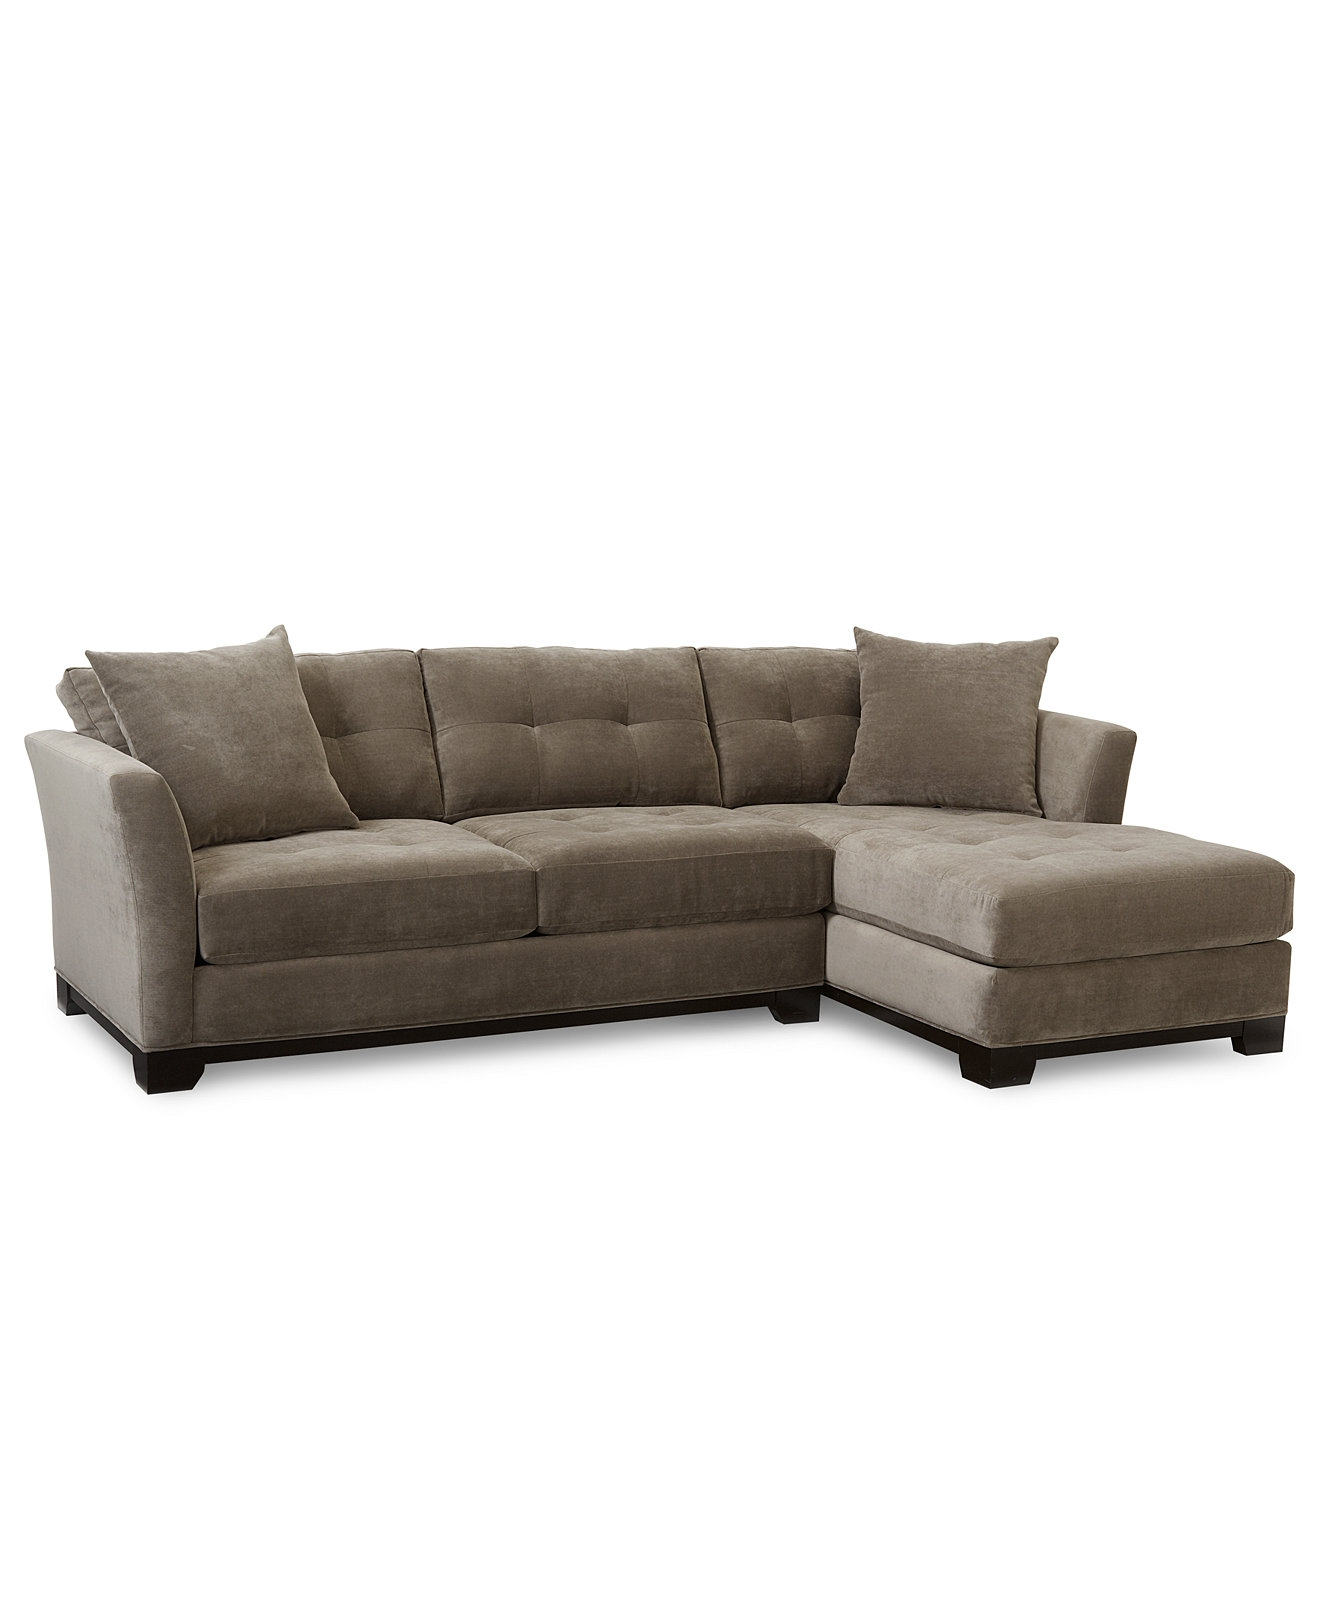 Elliot Fabric Microfiber 2 Pc Chaise Sectional Sofa Sectional Pertaining To Elliott Sofa (Image 8 of 15)